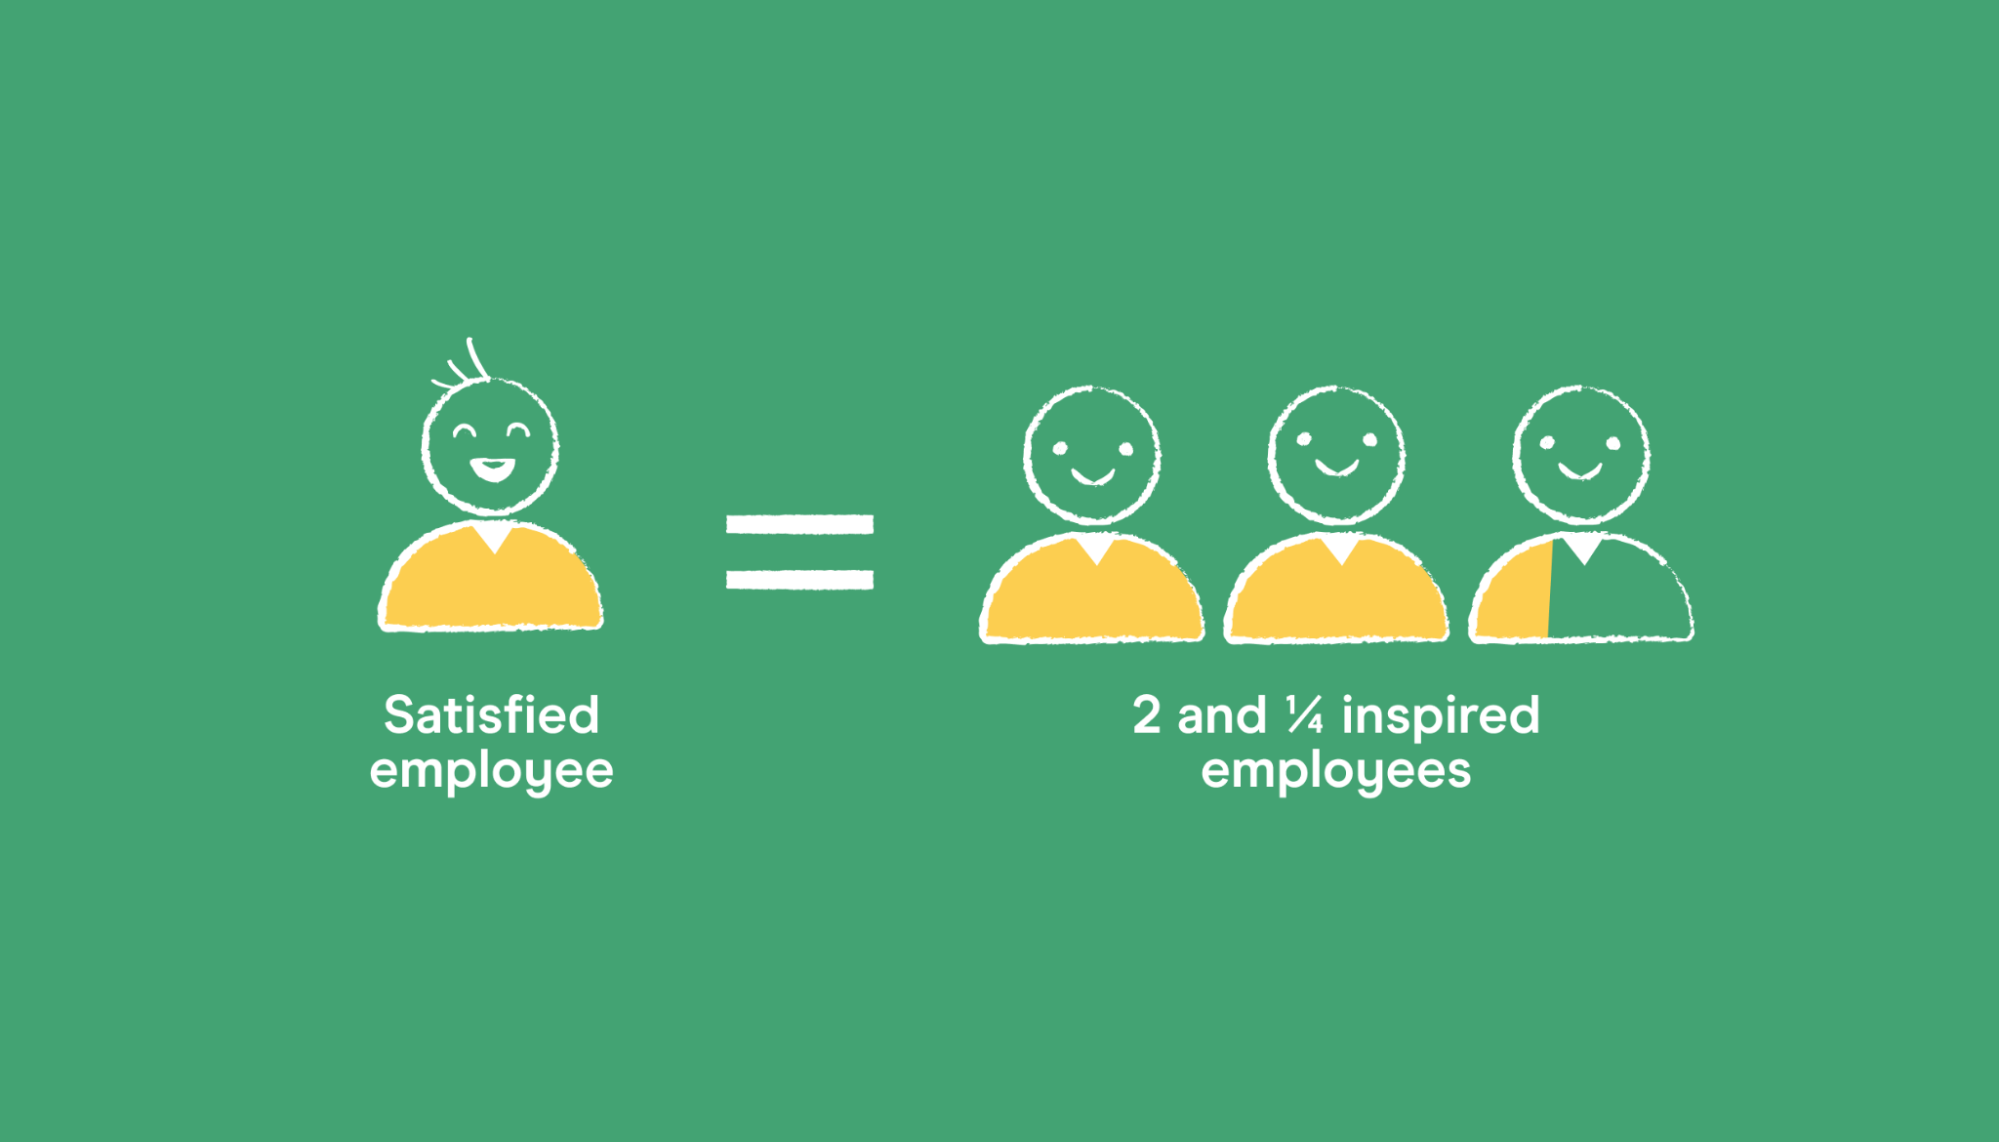 an inspired employee is 125% more productive than a satisfied employee